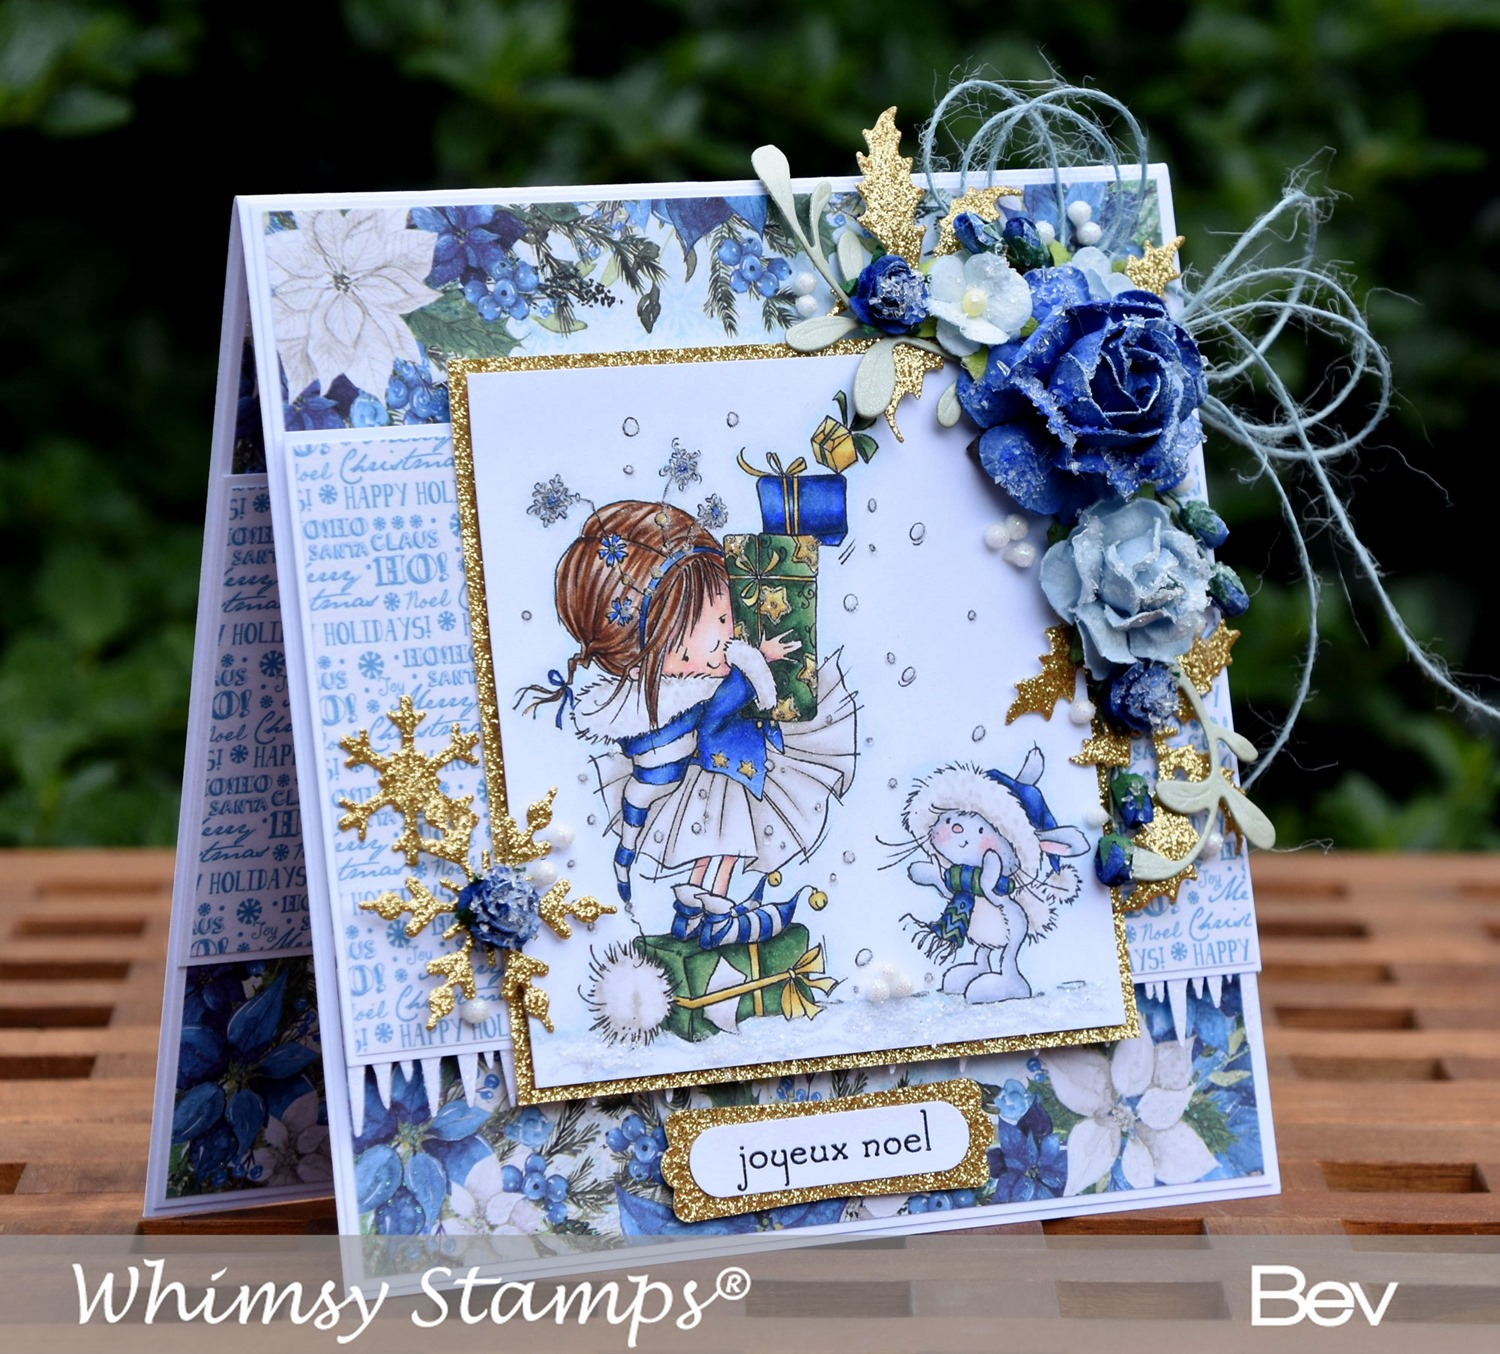 [bev-rochester-whimsy-stamps-winter-friends1%5B2%5D]